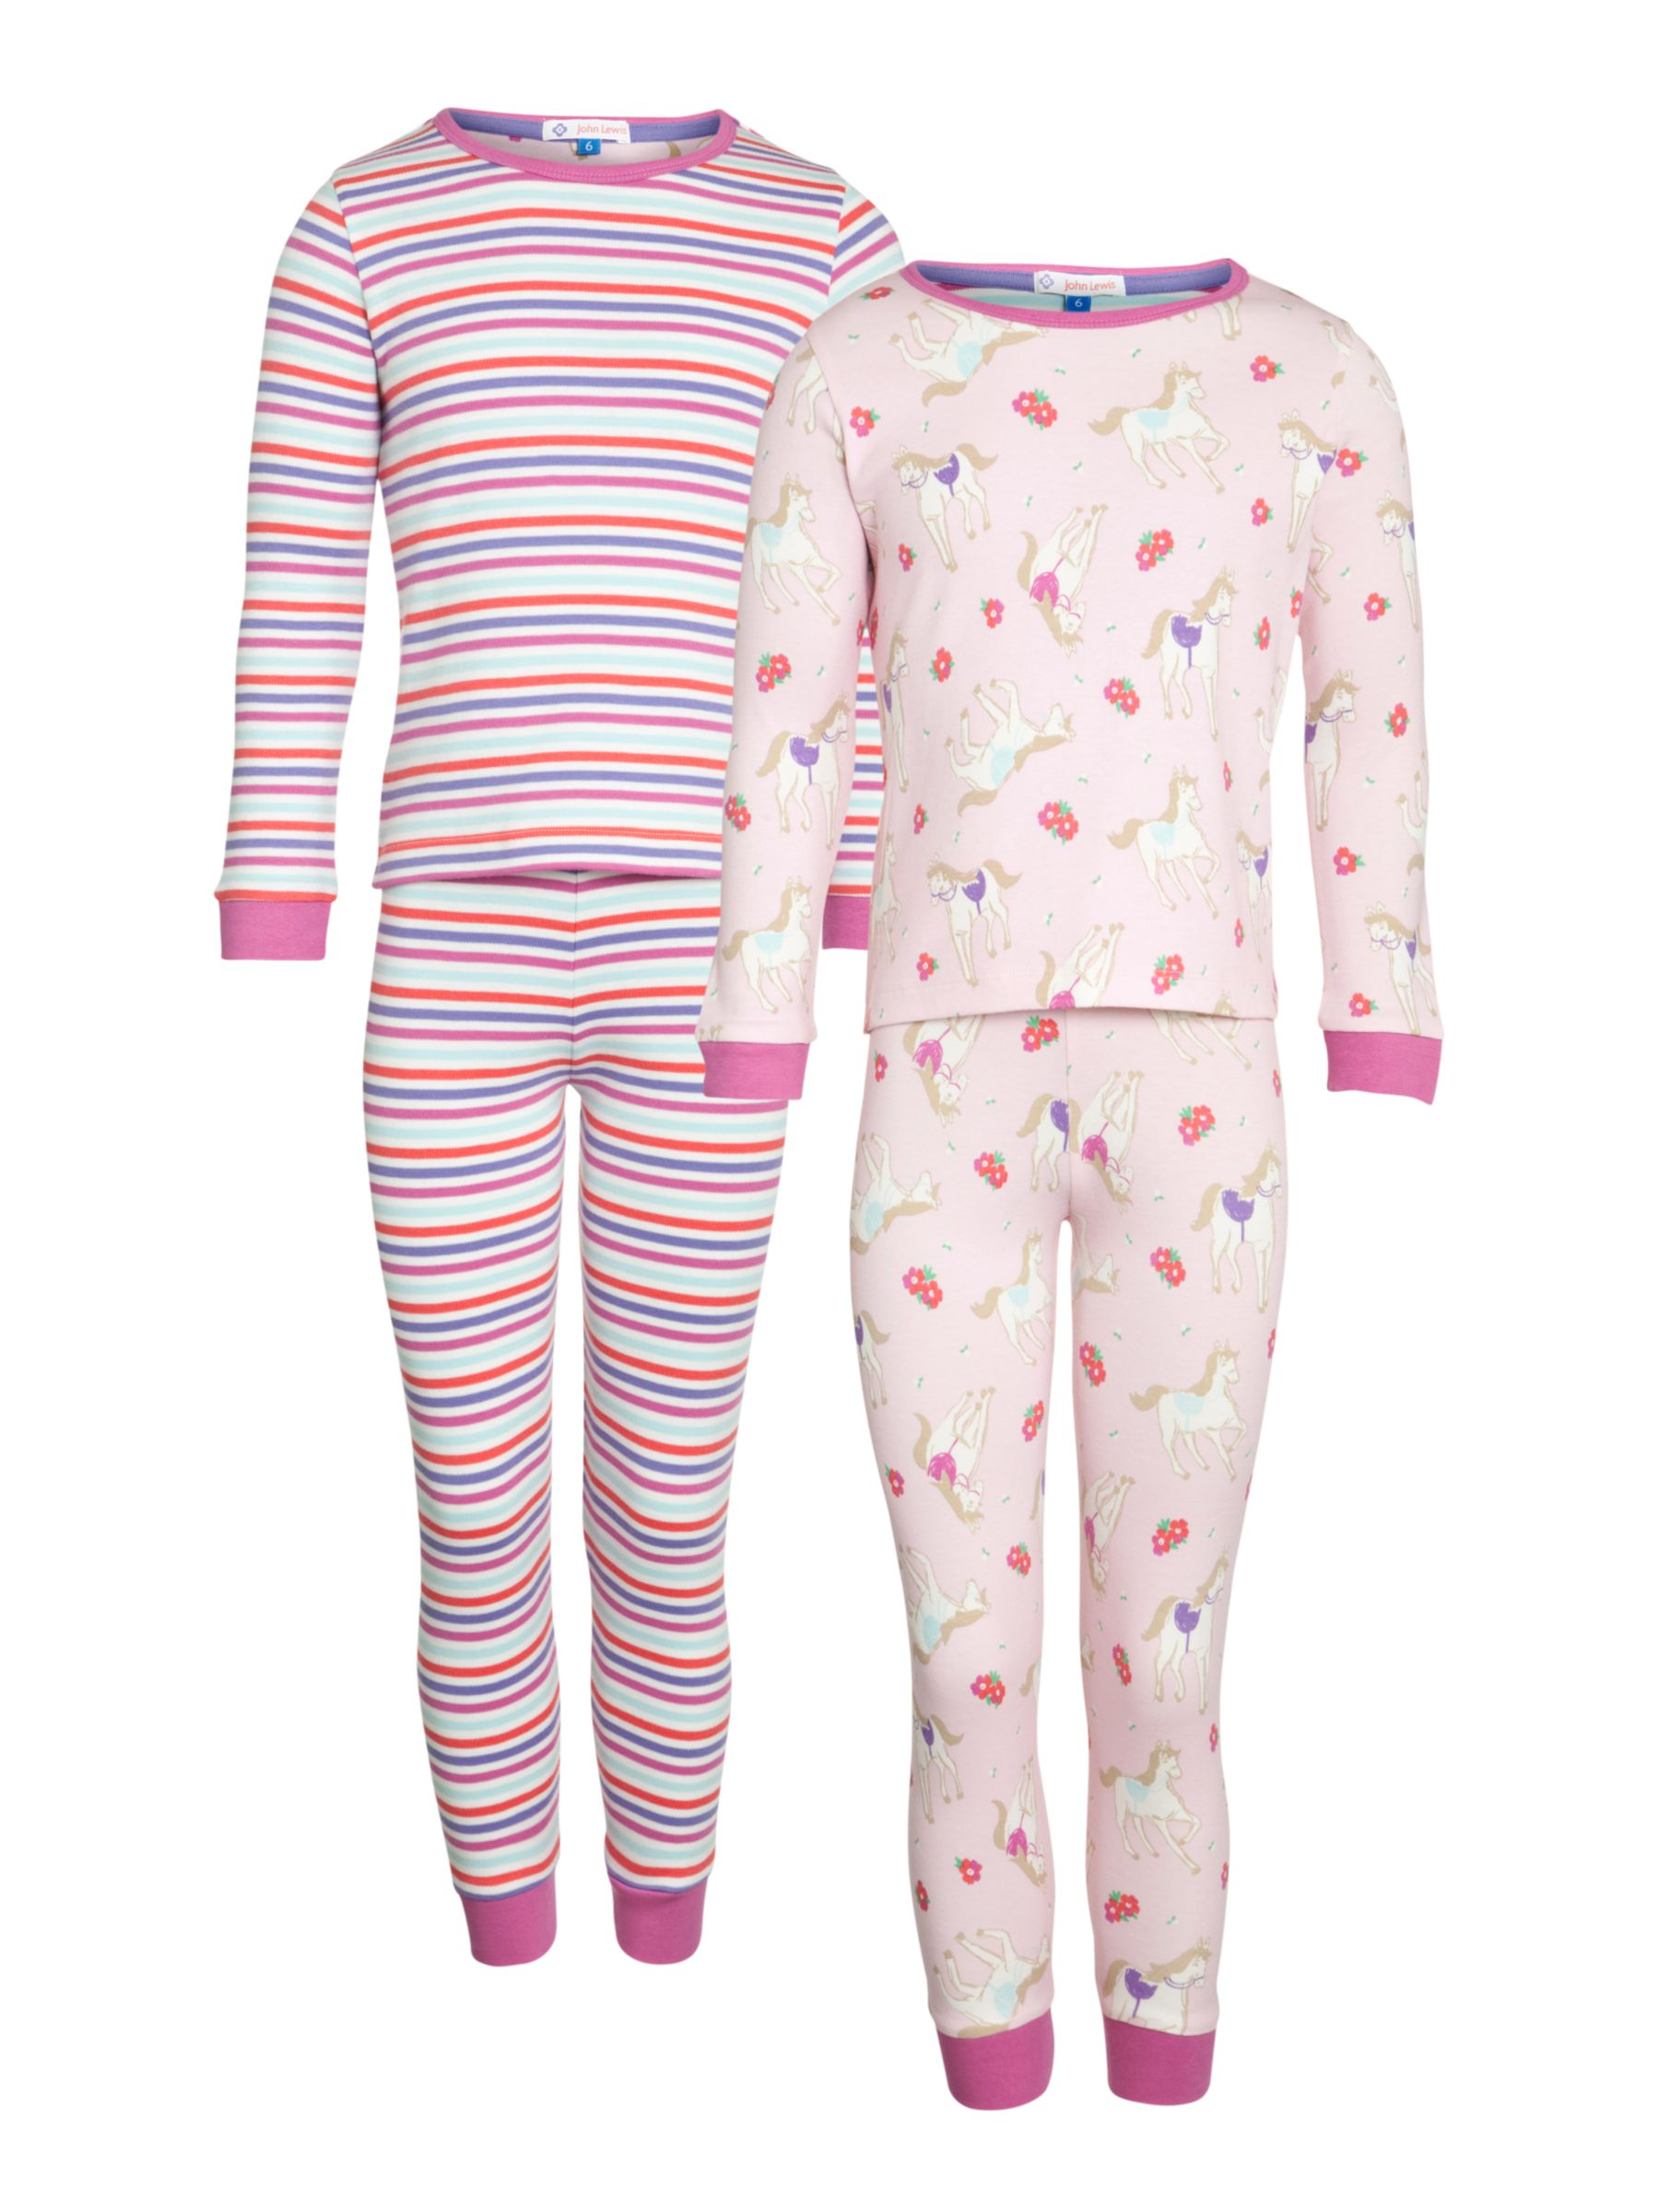 John Lewis Girl Horses And Stripes Pyjamas, Pack of 2, Pink